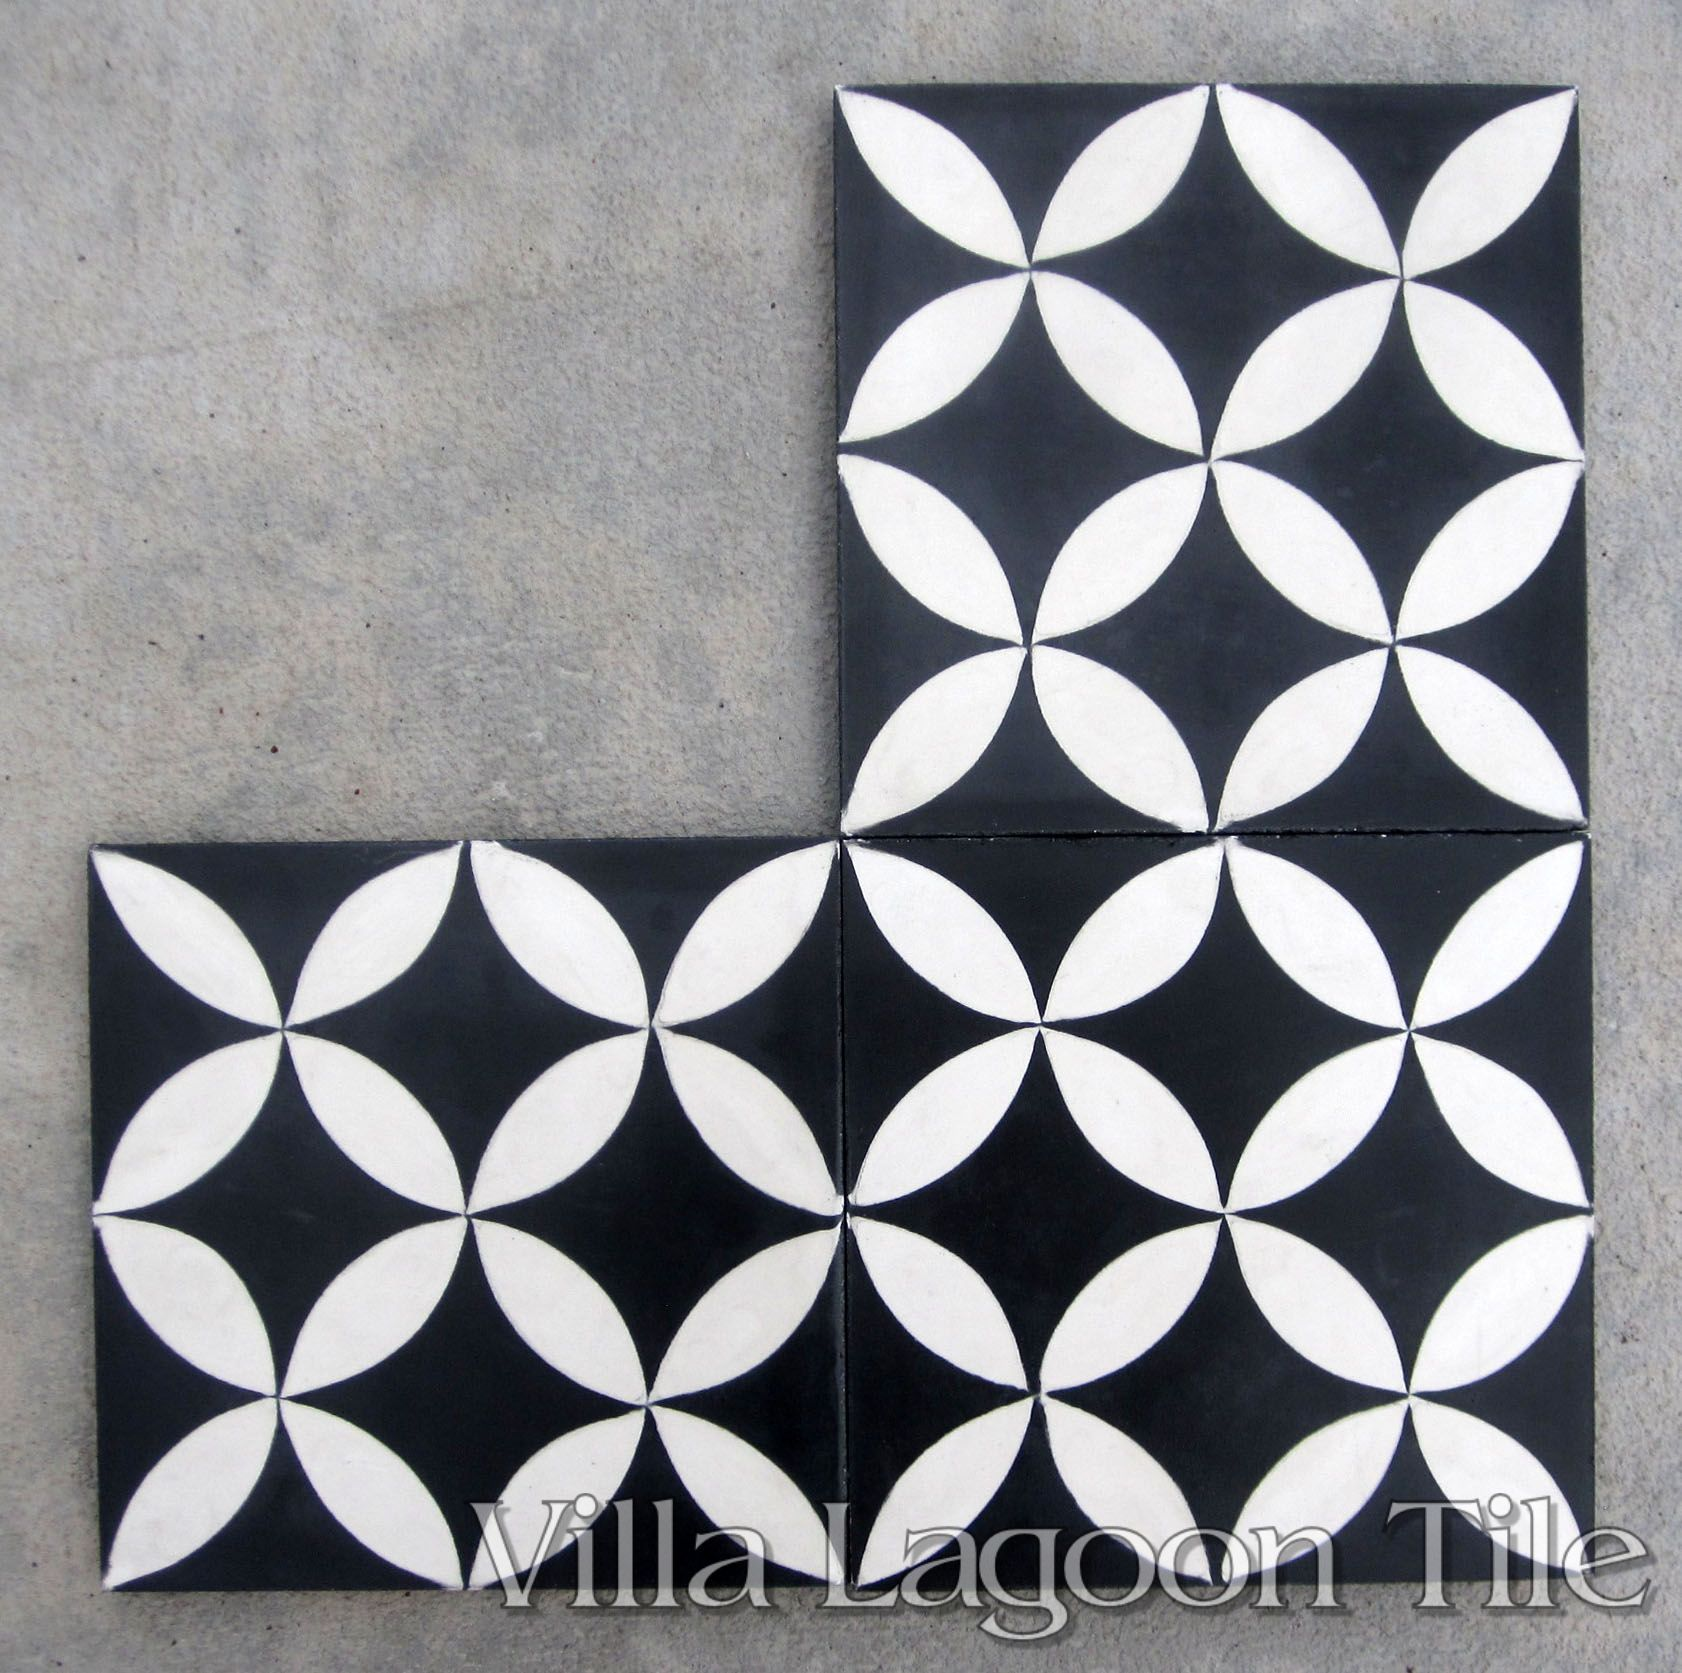 Circulos Black And White Cement Tile Villa Lagoon Tile